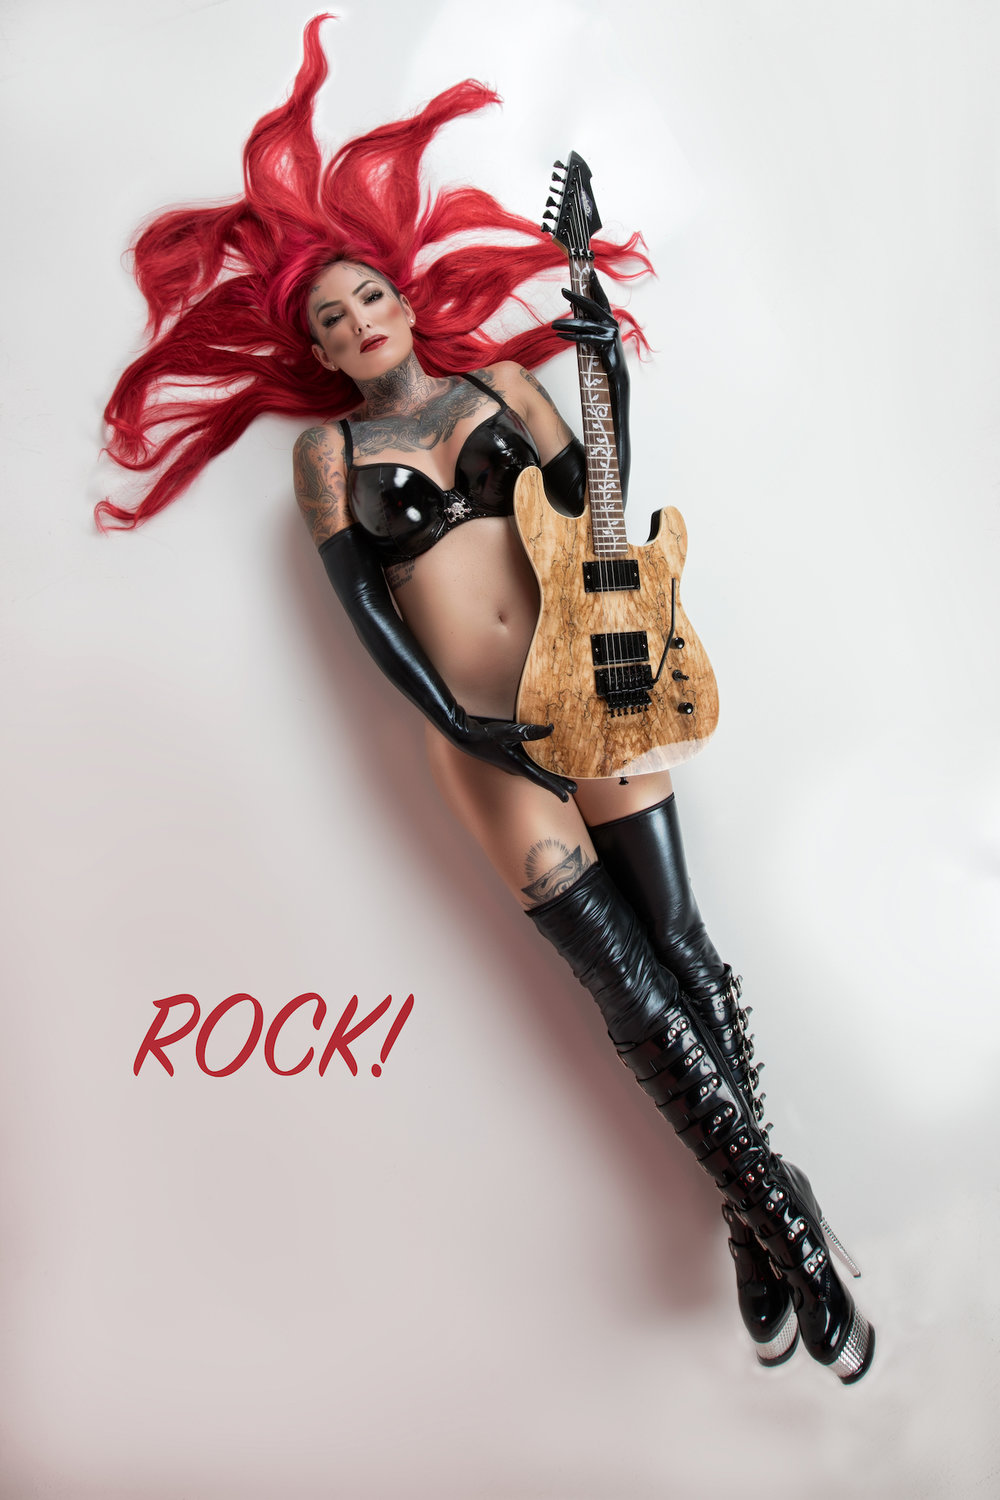 Guitar0717VanessaGregory - IMGL3879-Edit.jpg